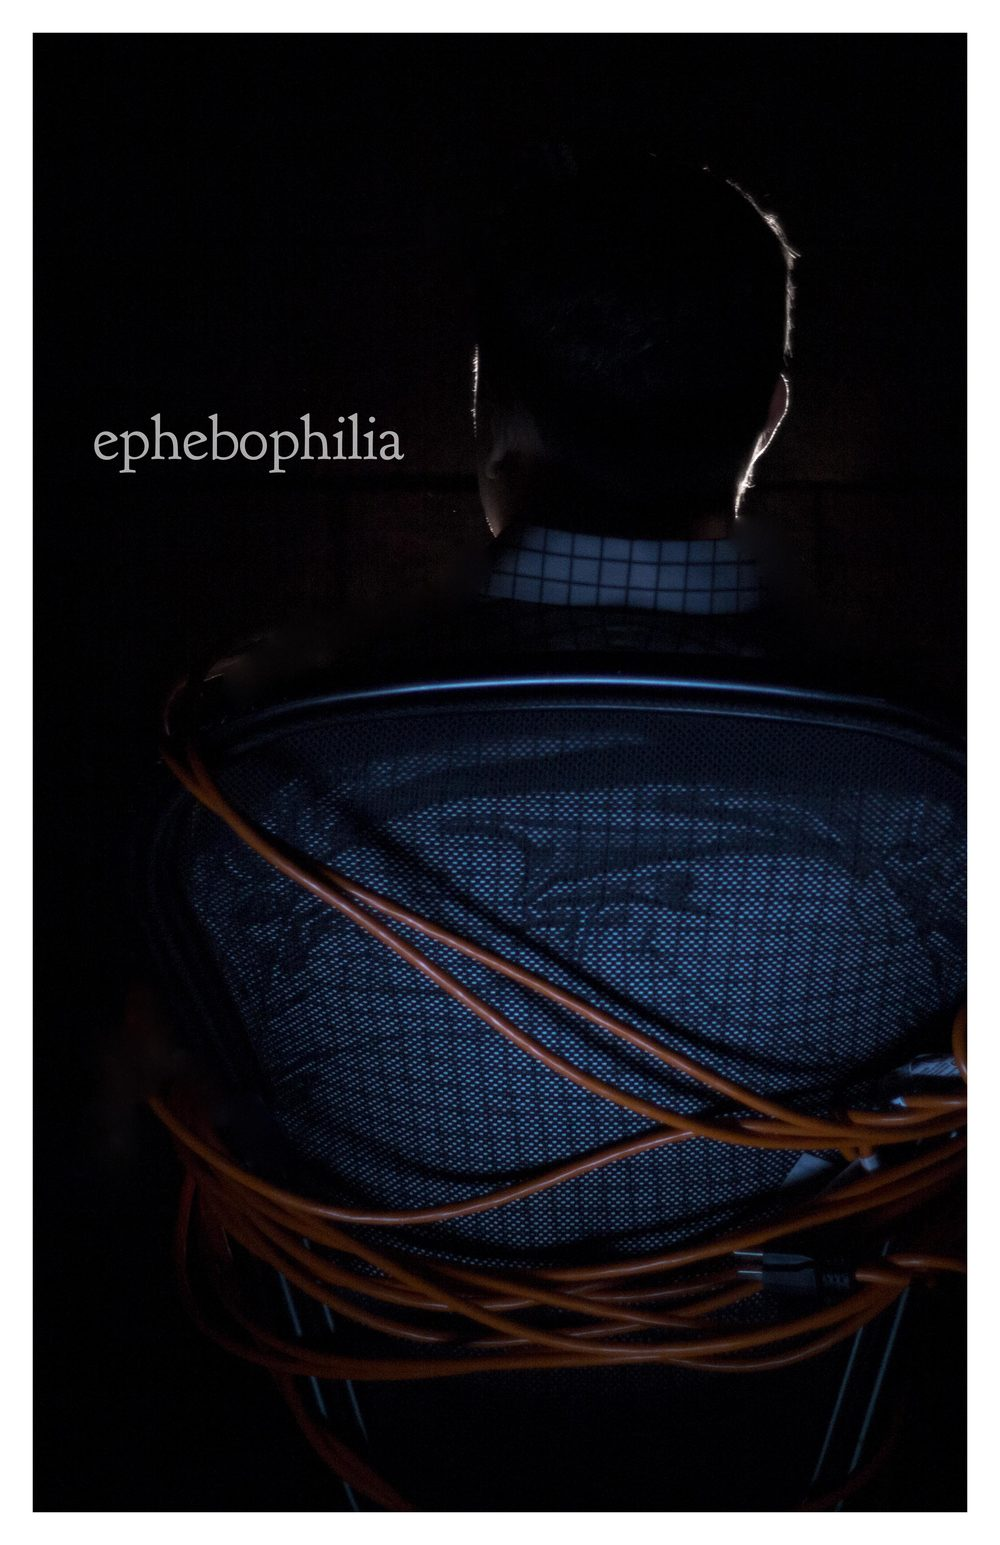 EPHEBOPHILIA by Resident Playwright Dusty Wilson a world premiere production directed by Ensemble Member Clint Worthington